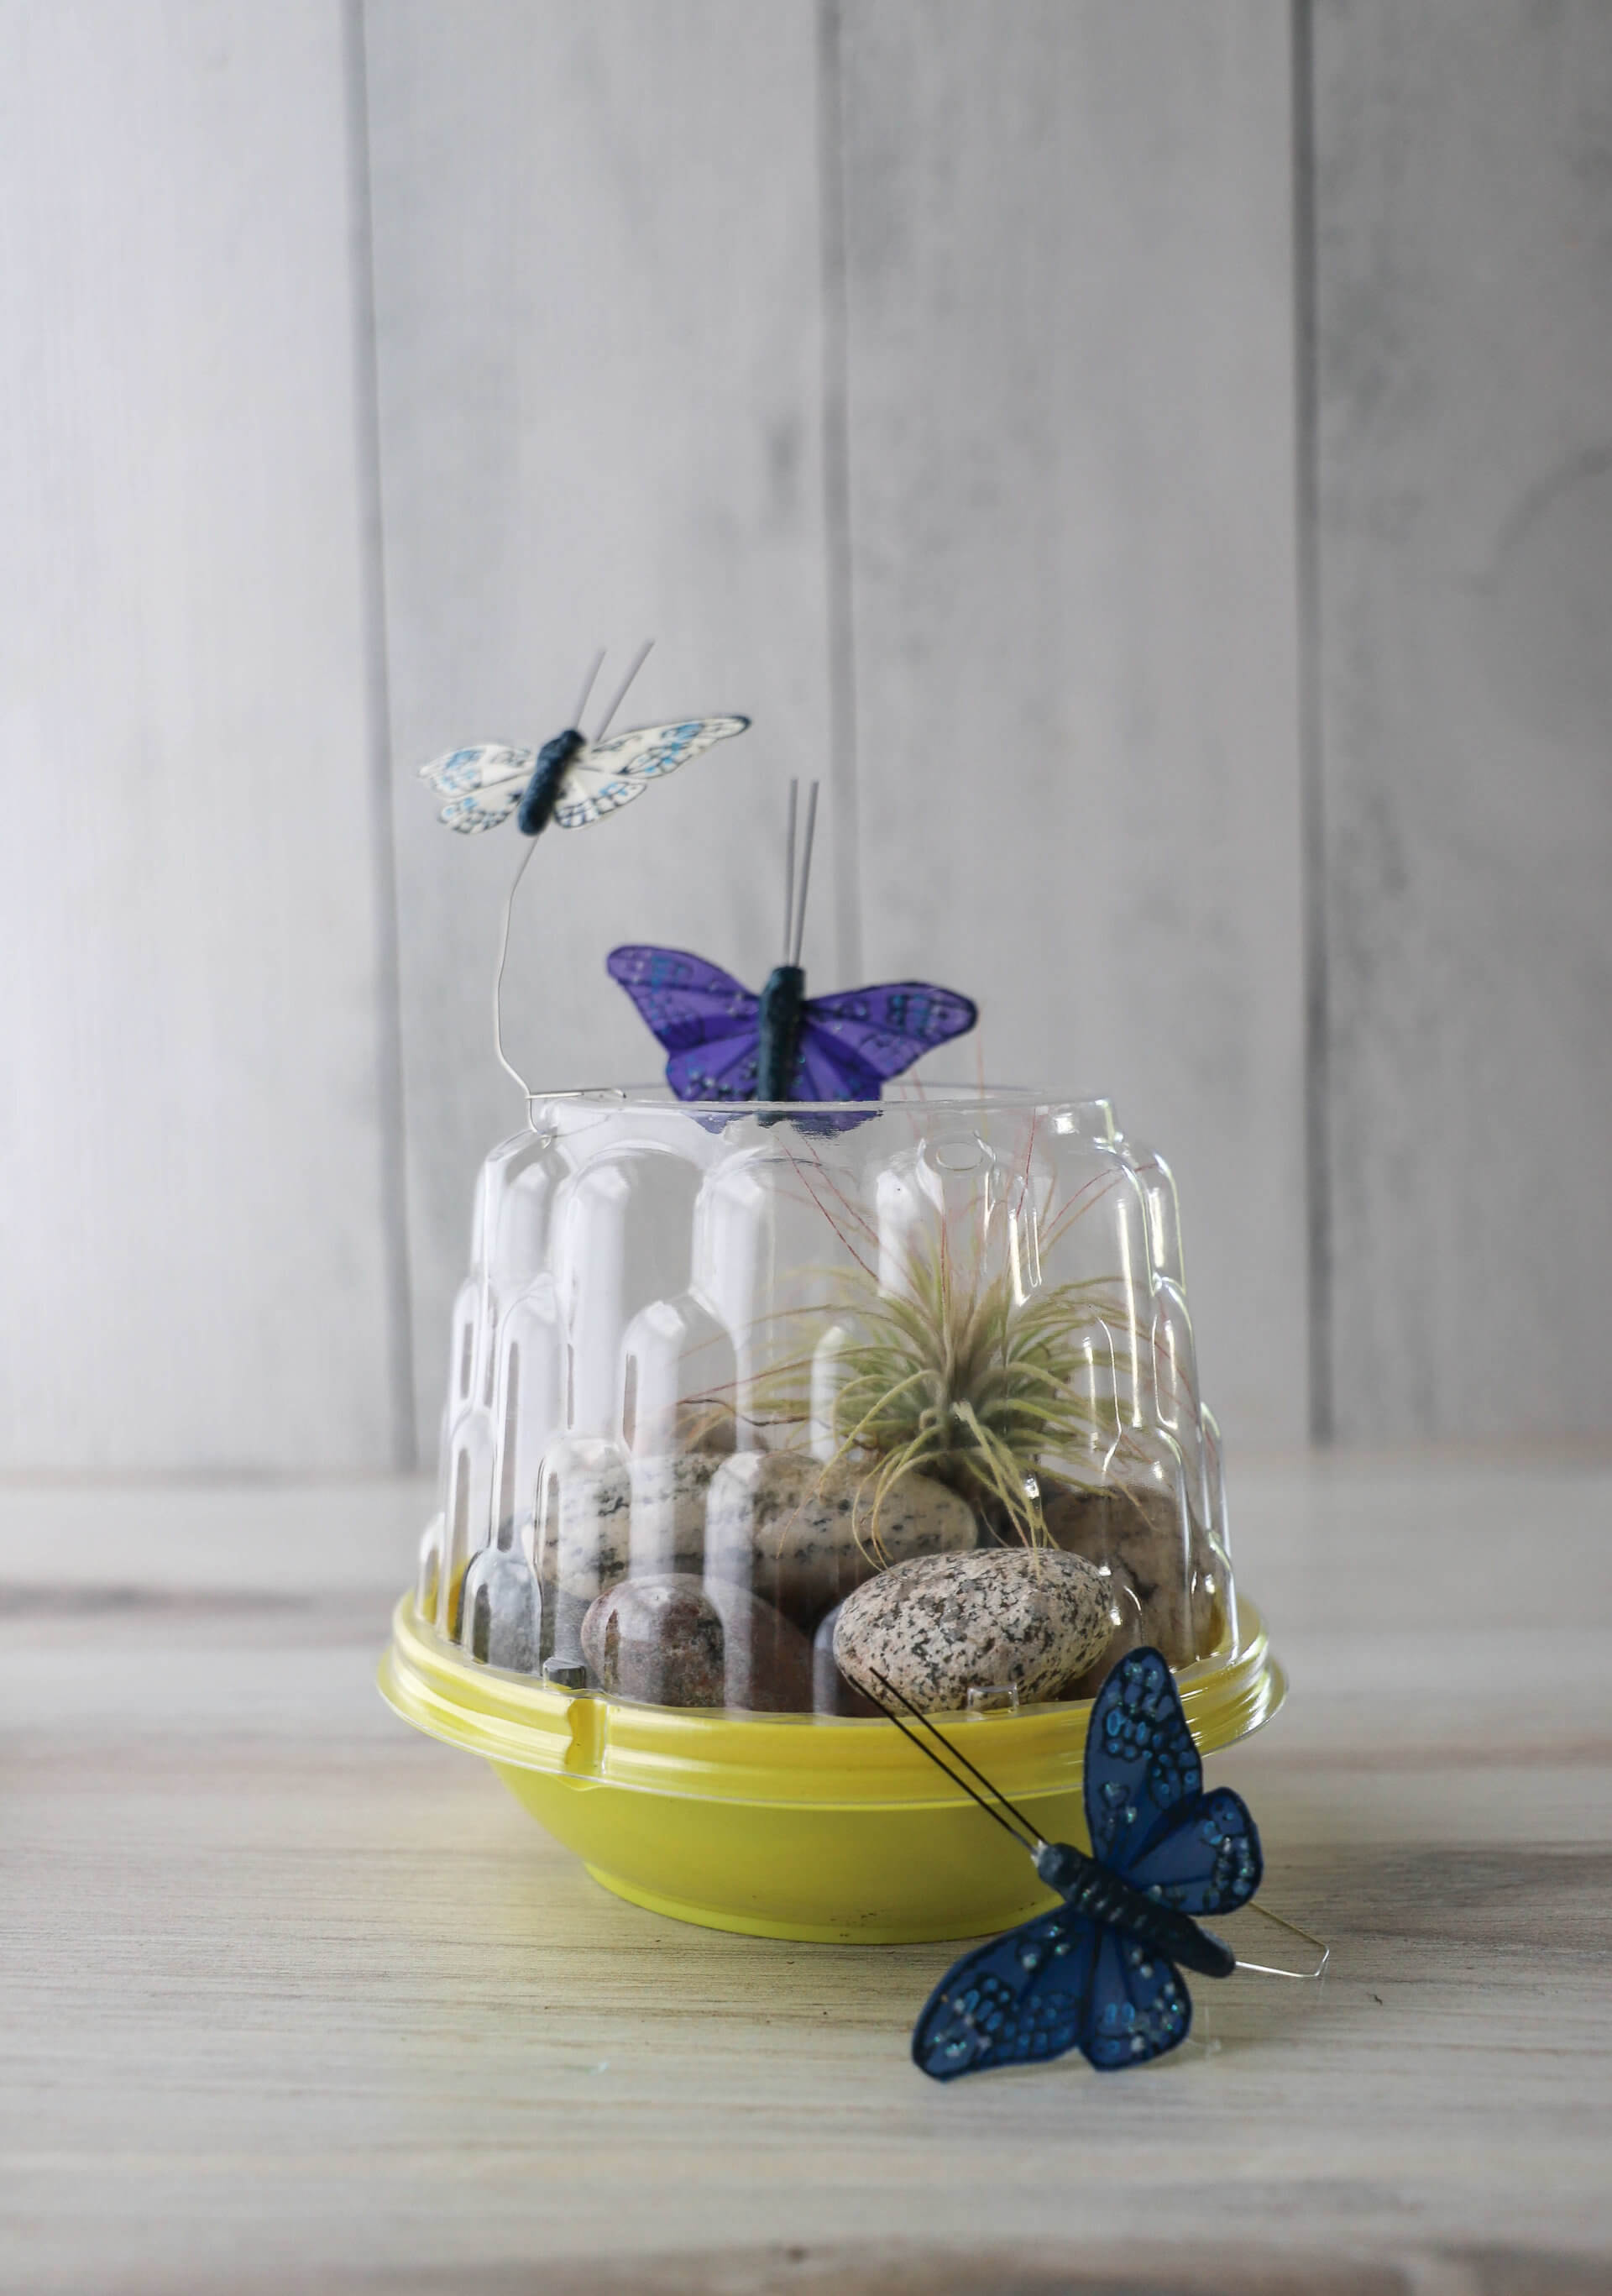 Summer Craft Ideas: Mini Terrarium